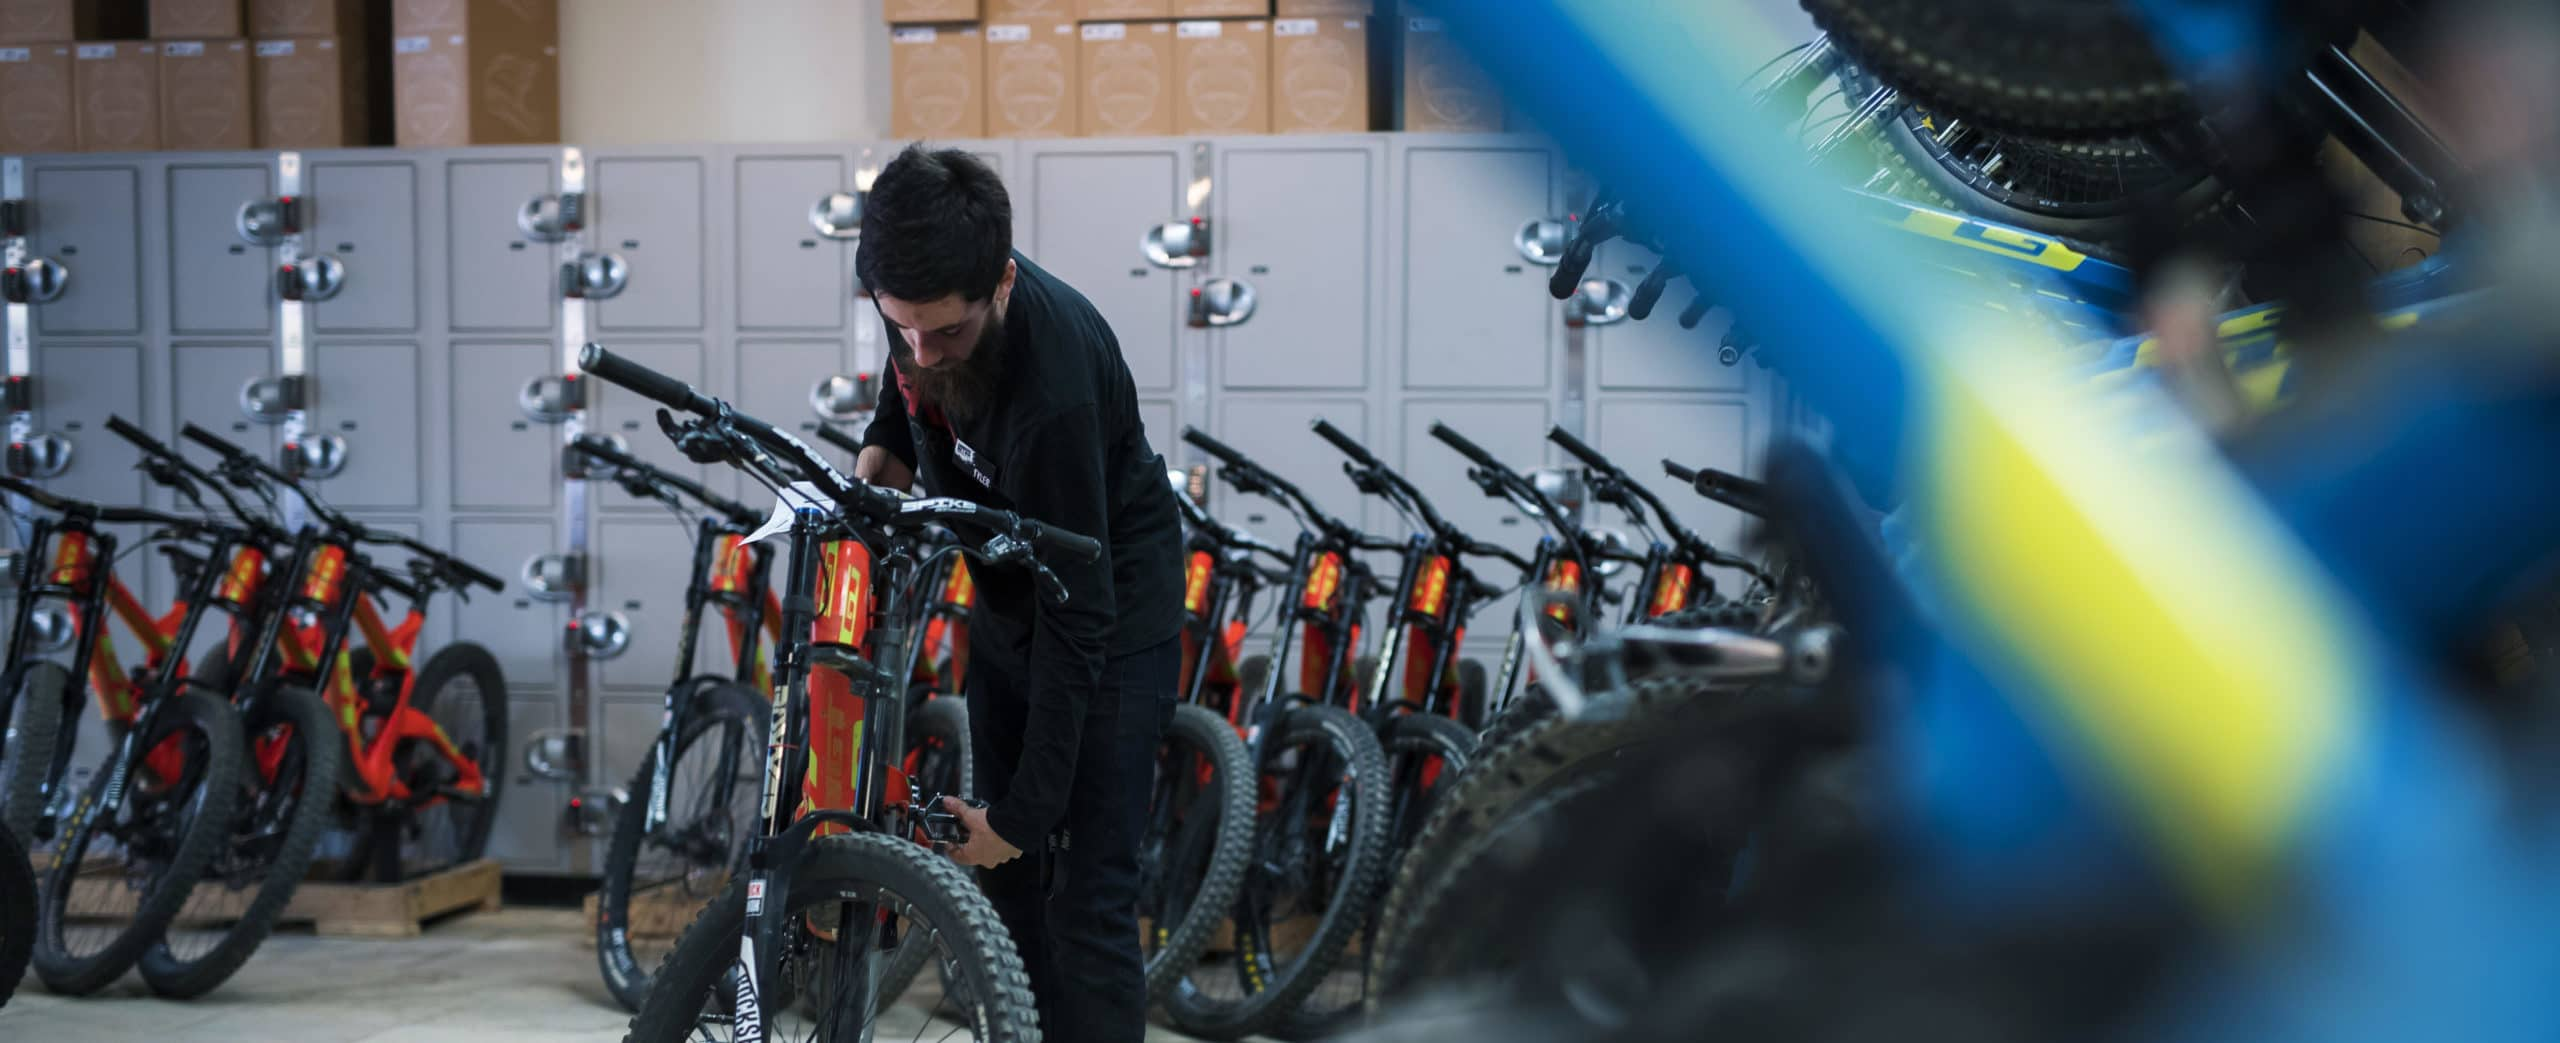 A photograph of a young man working in a bike shop. He is adjusting a mountain bike, with a row of bikes behind him.